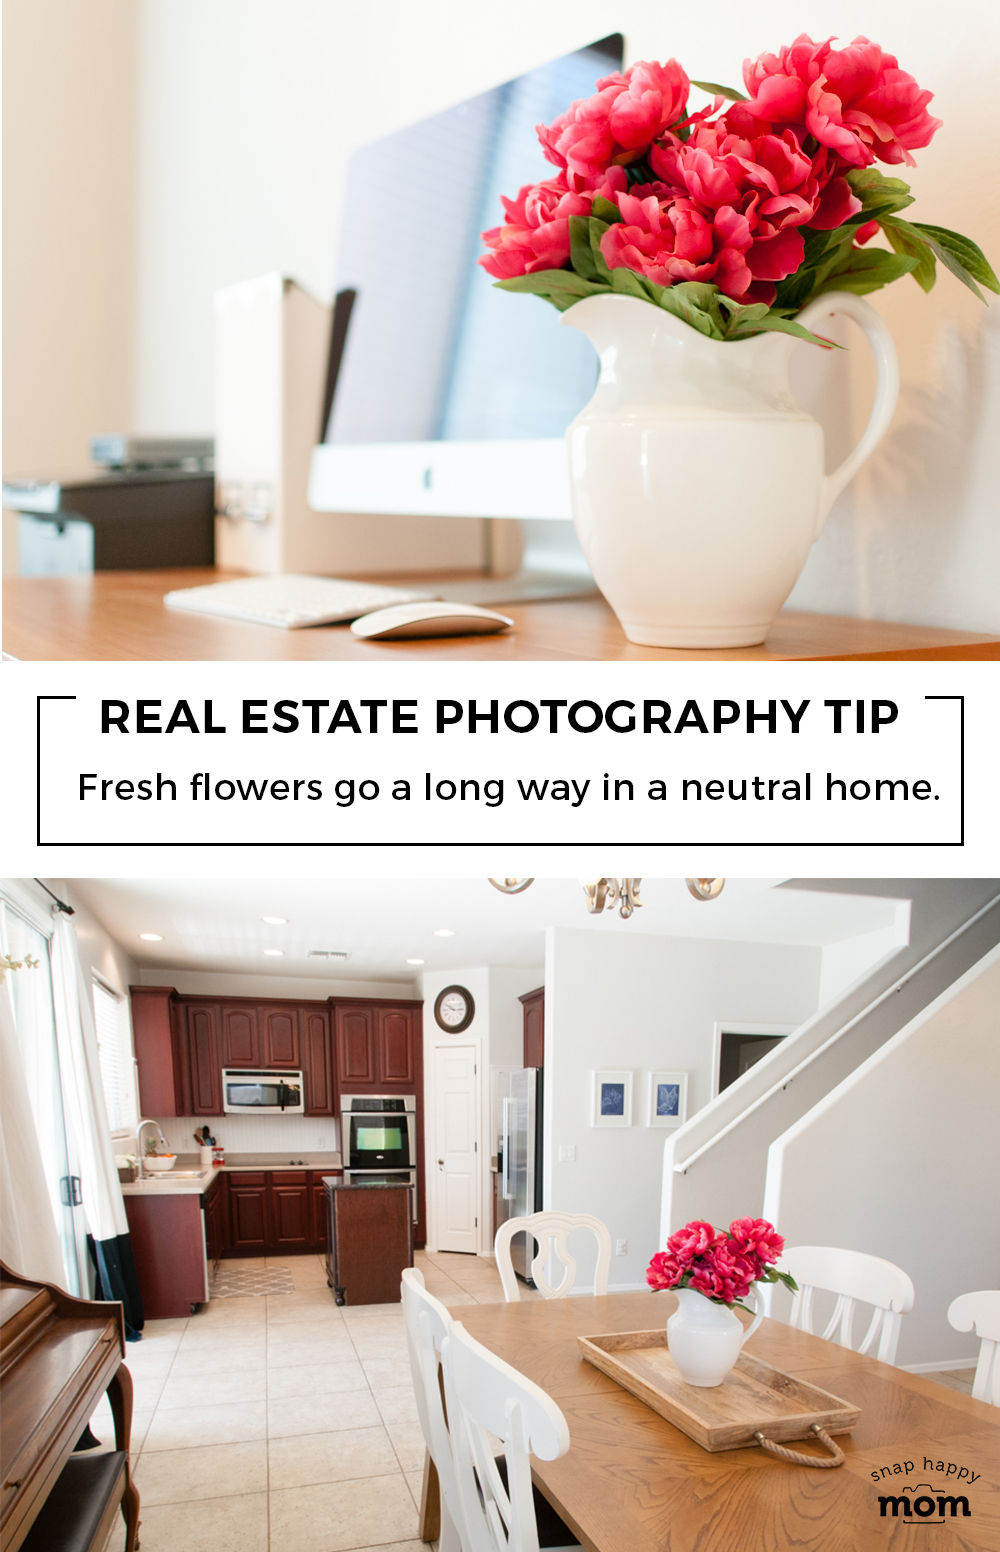 Real Estate Photography: Fresh flowers go a long way in a neutral home.